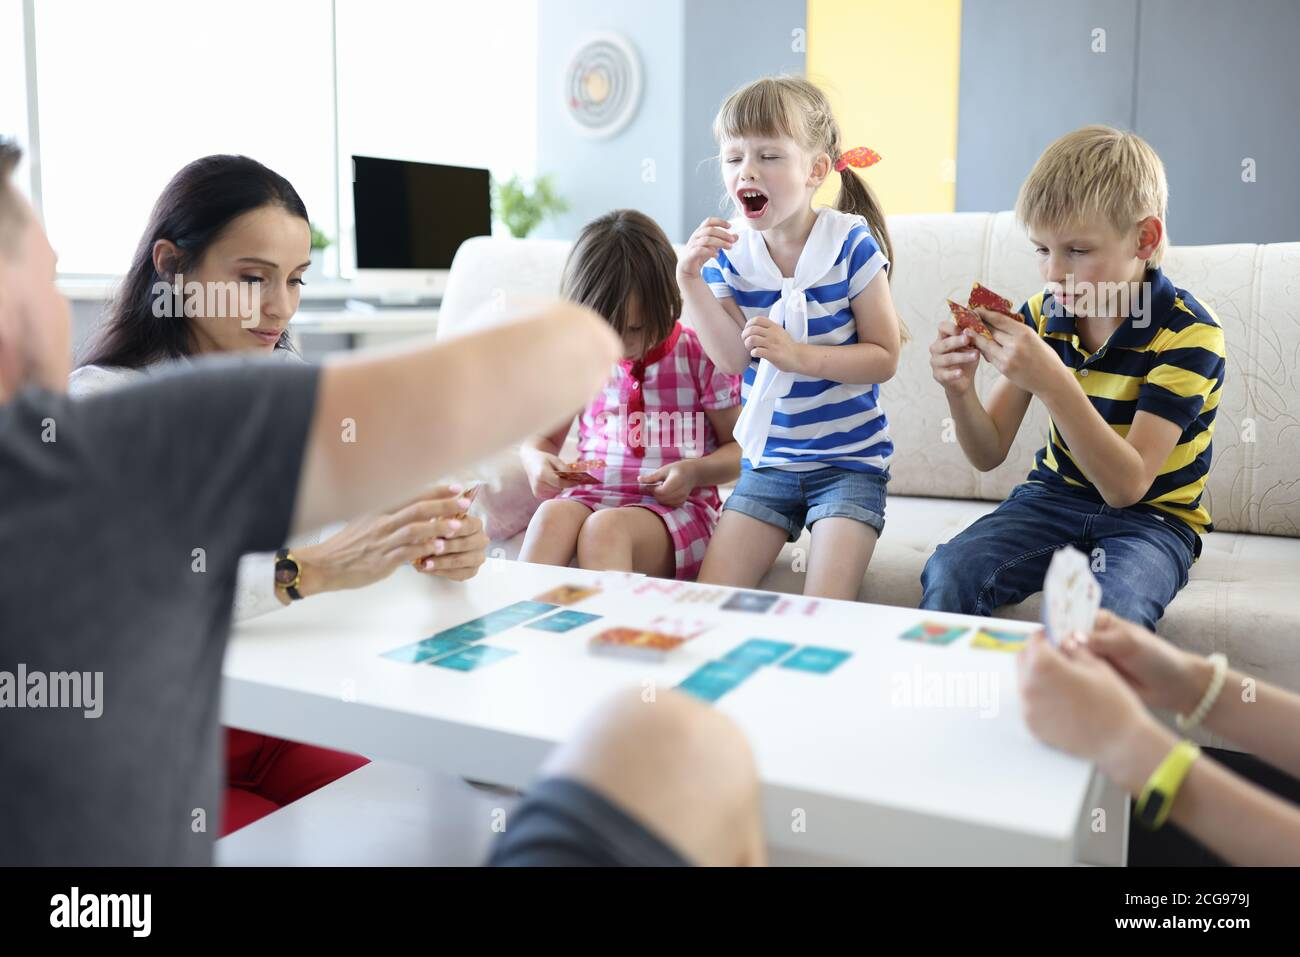 Adults and children are sitting at table and holding playing cards girl stood up and shouts. Stock Photo